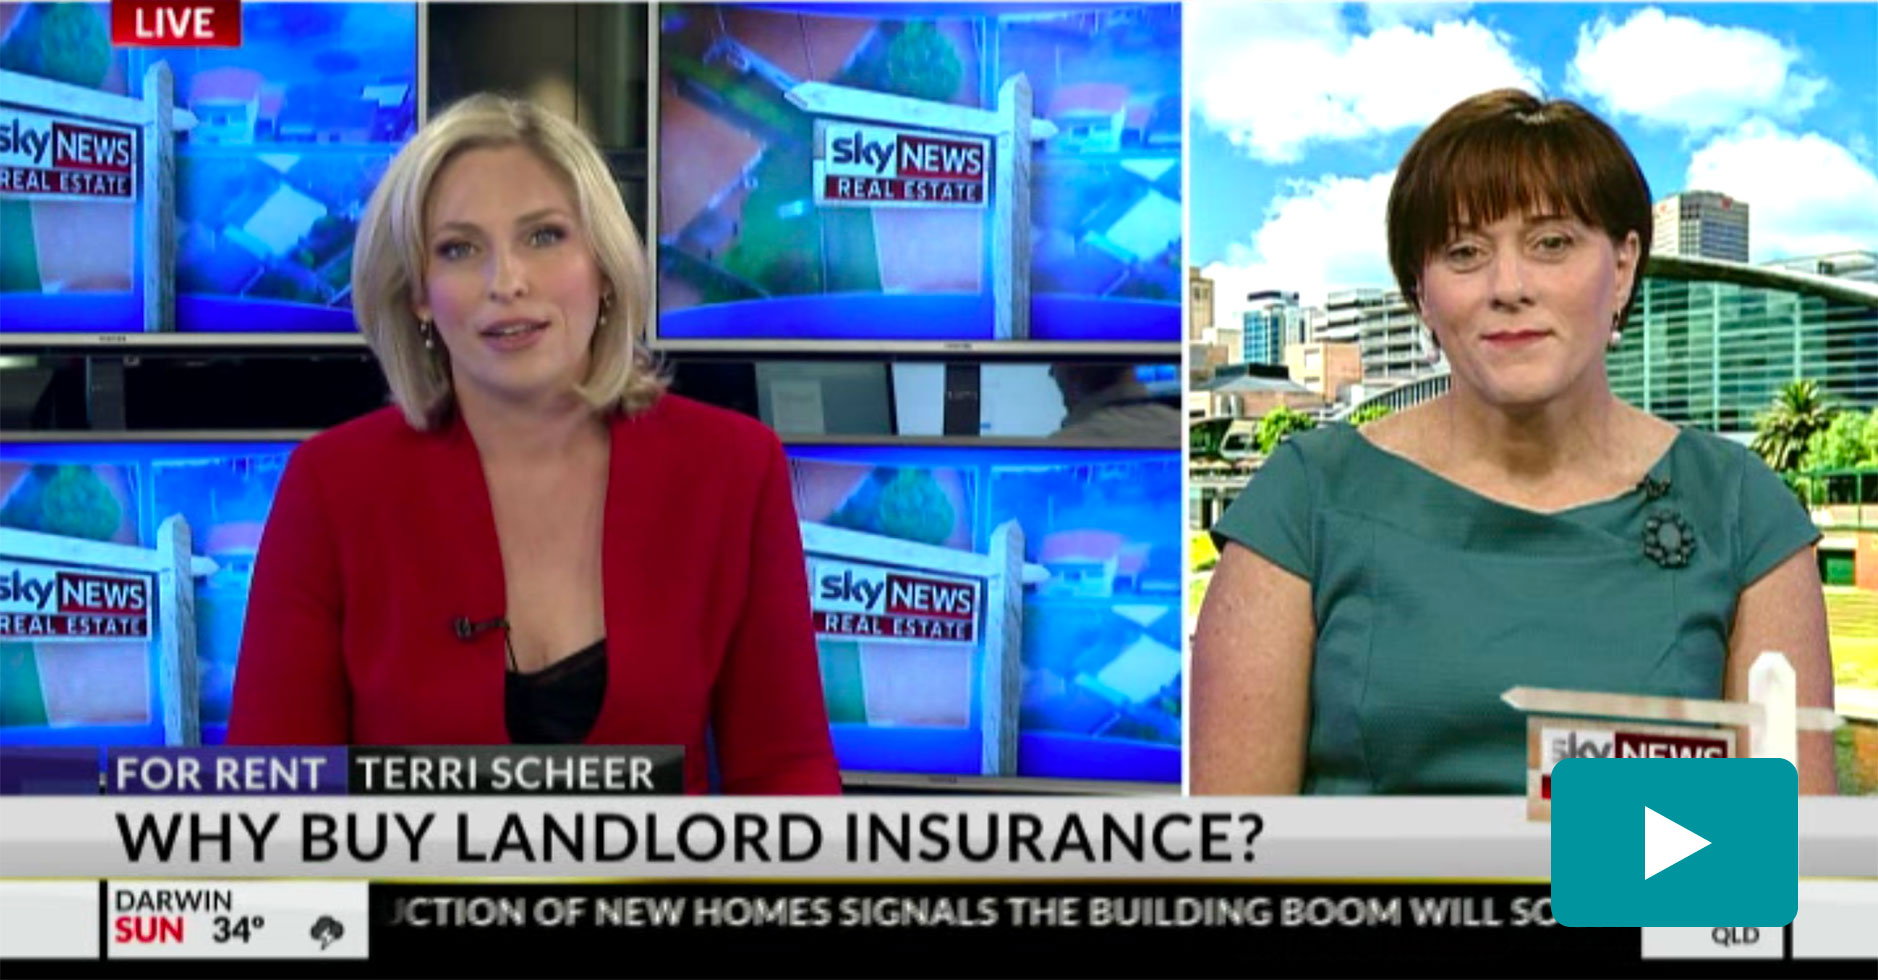 SkyNews Play Real Estate Investar: What is Landlord Insurance?